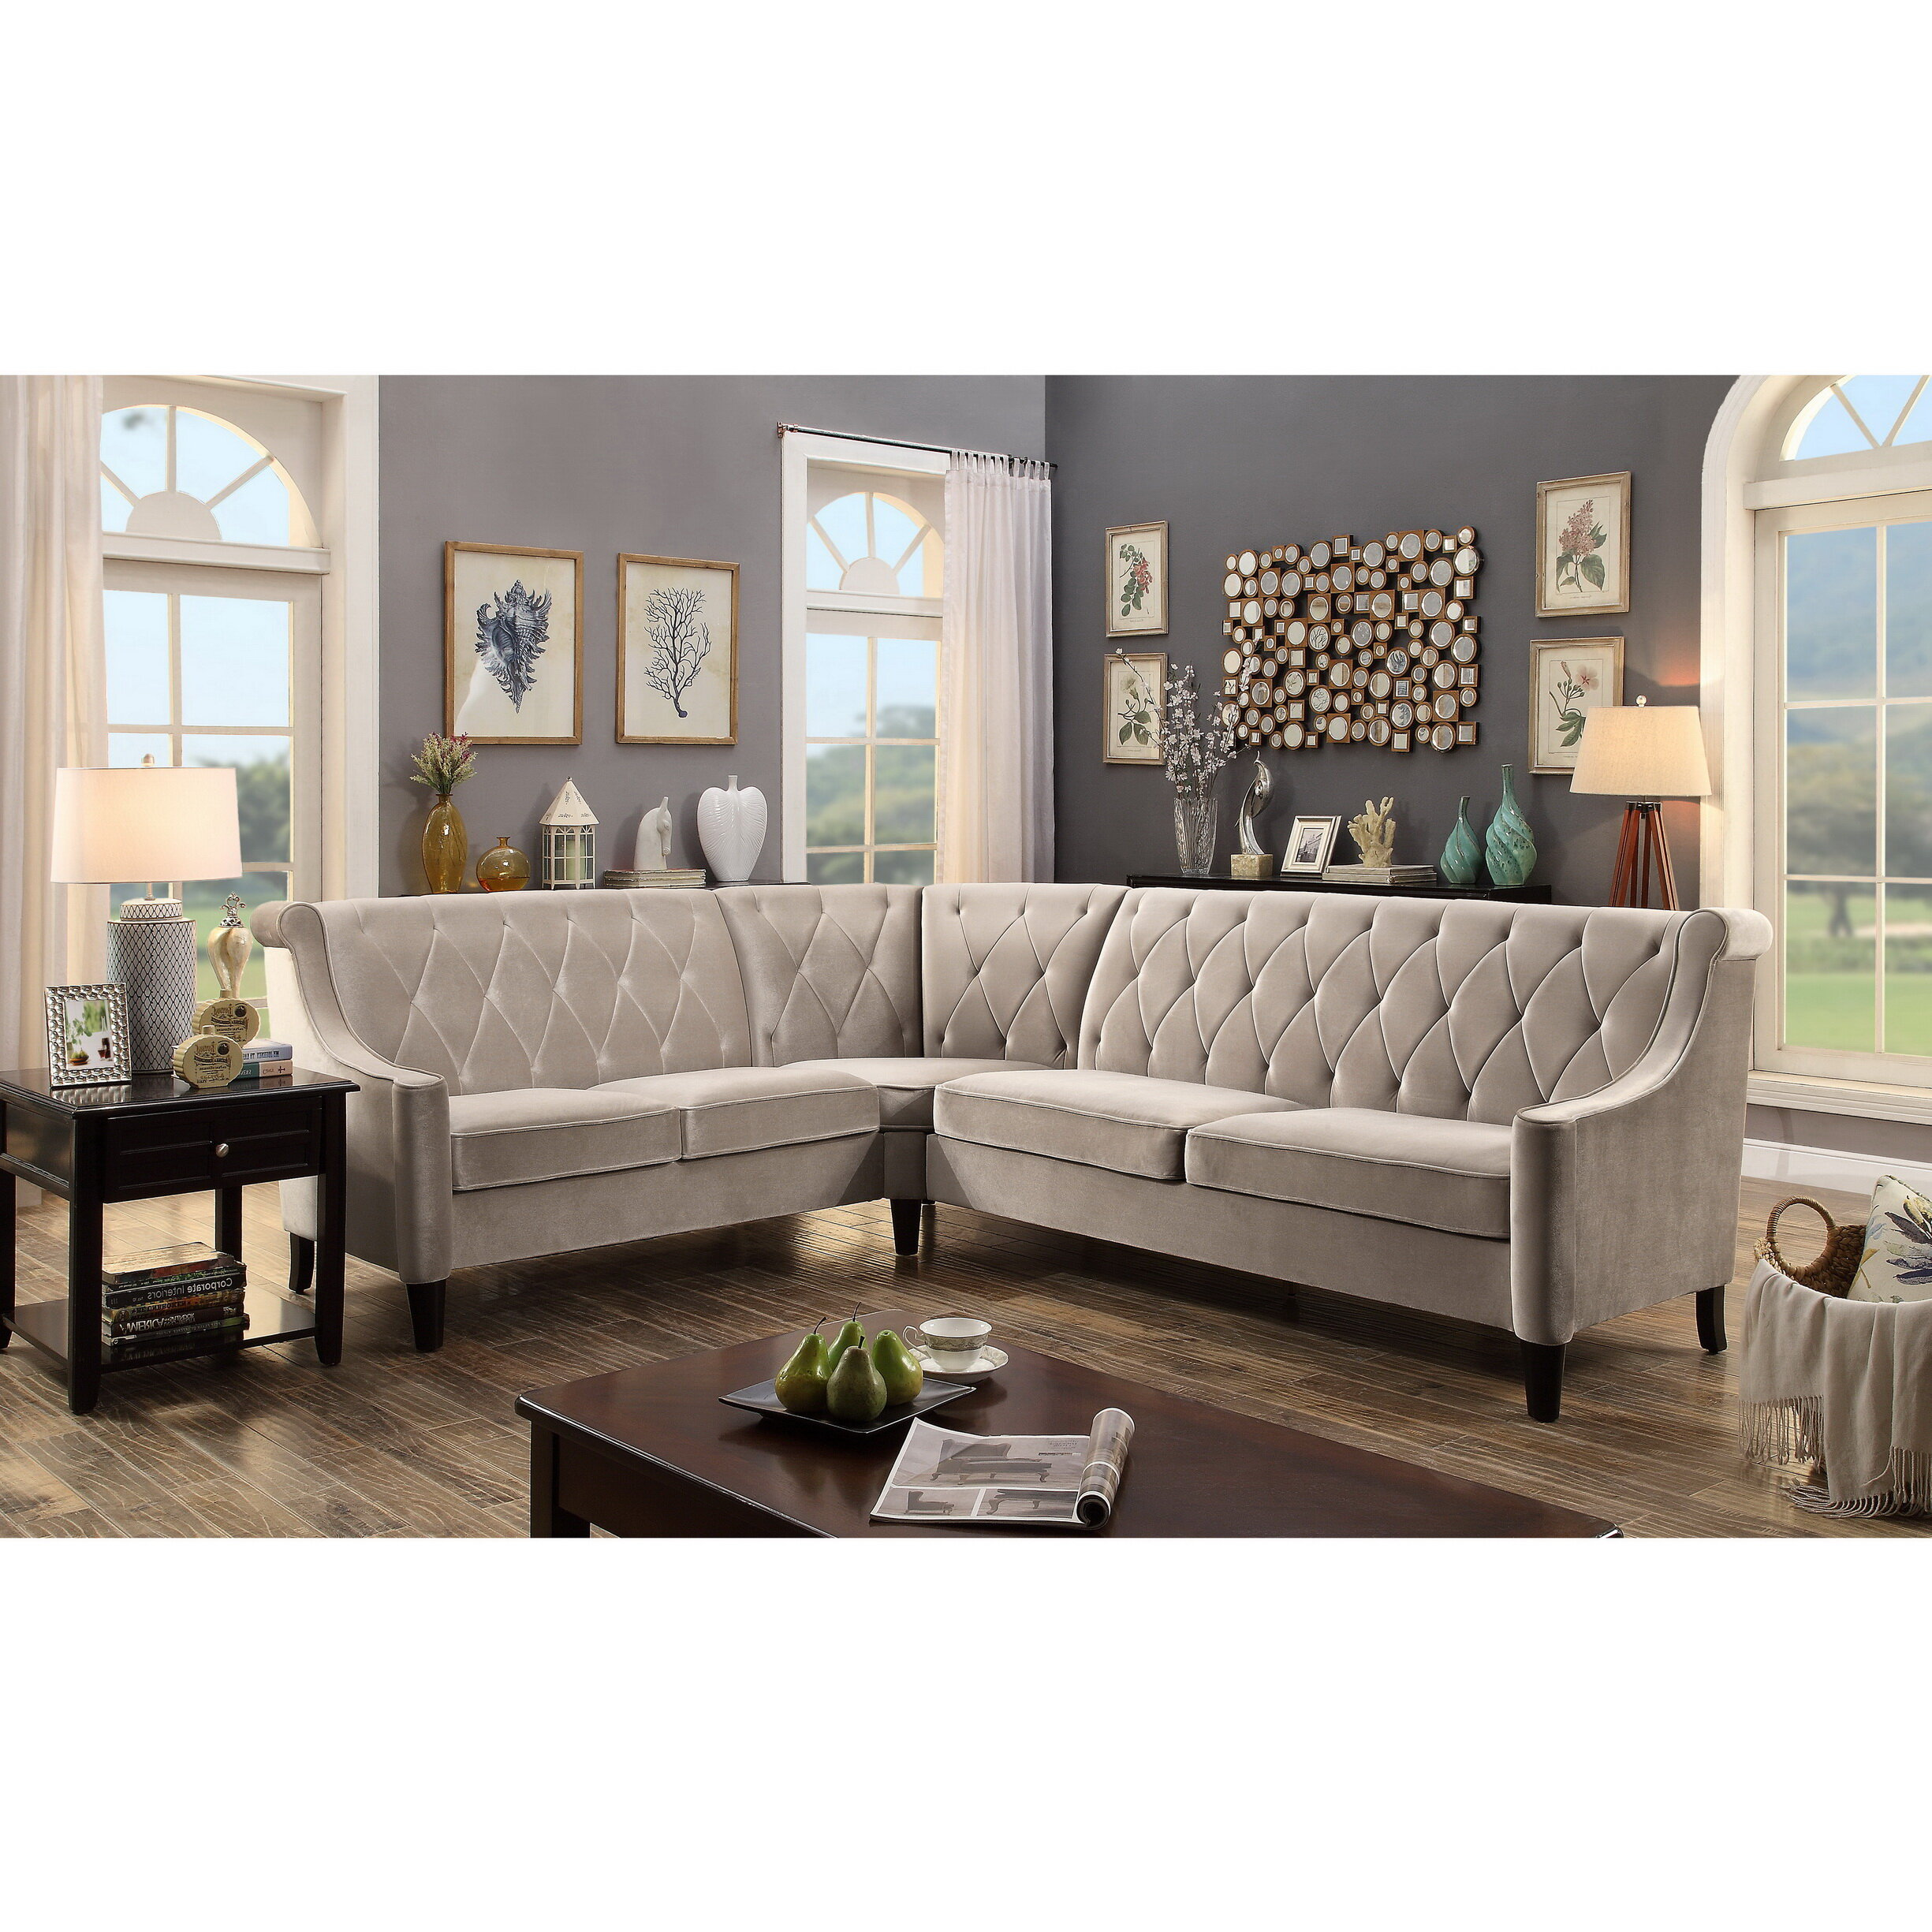 Superbe Willa Arlo Interiors Buchanan Sectional U0026 Reviews | Wayfair